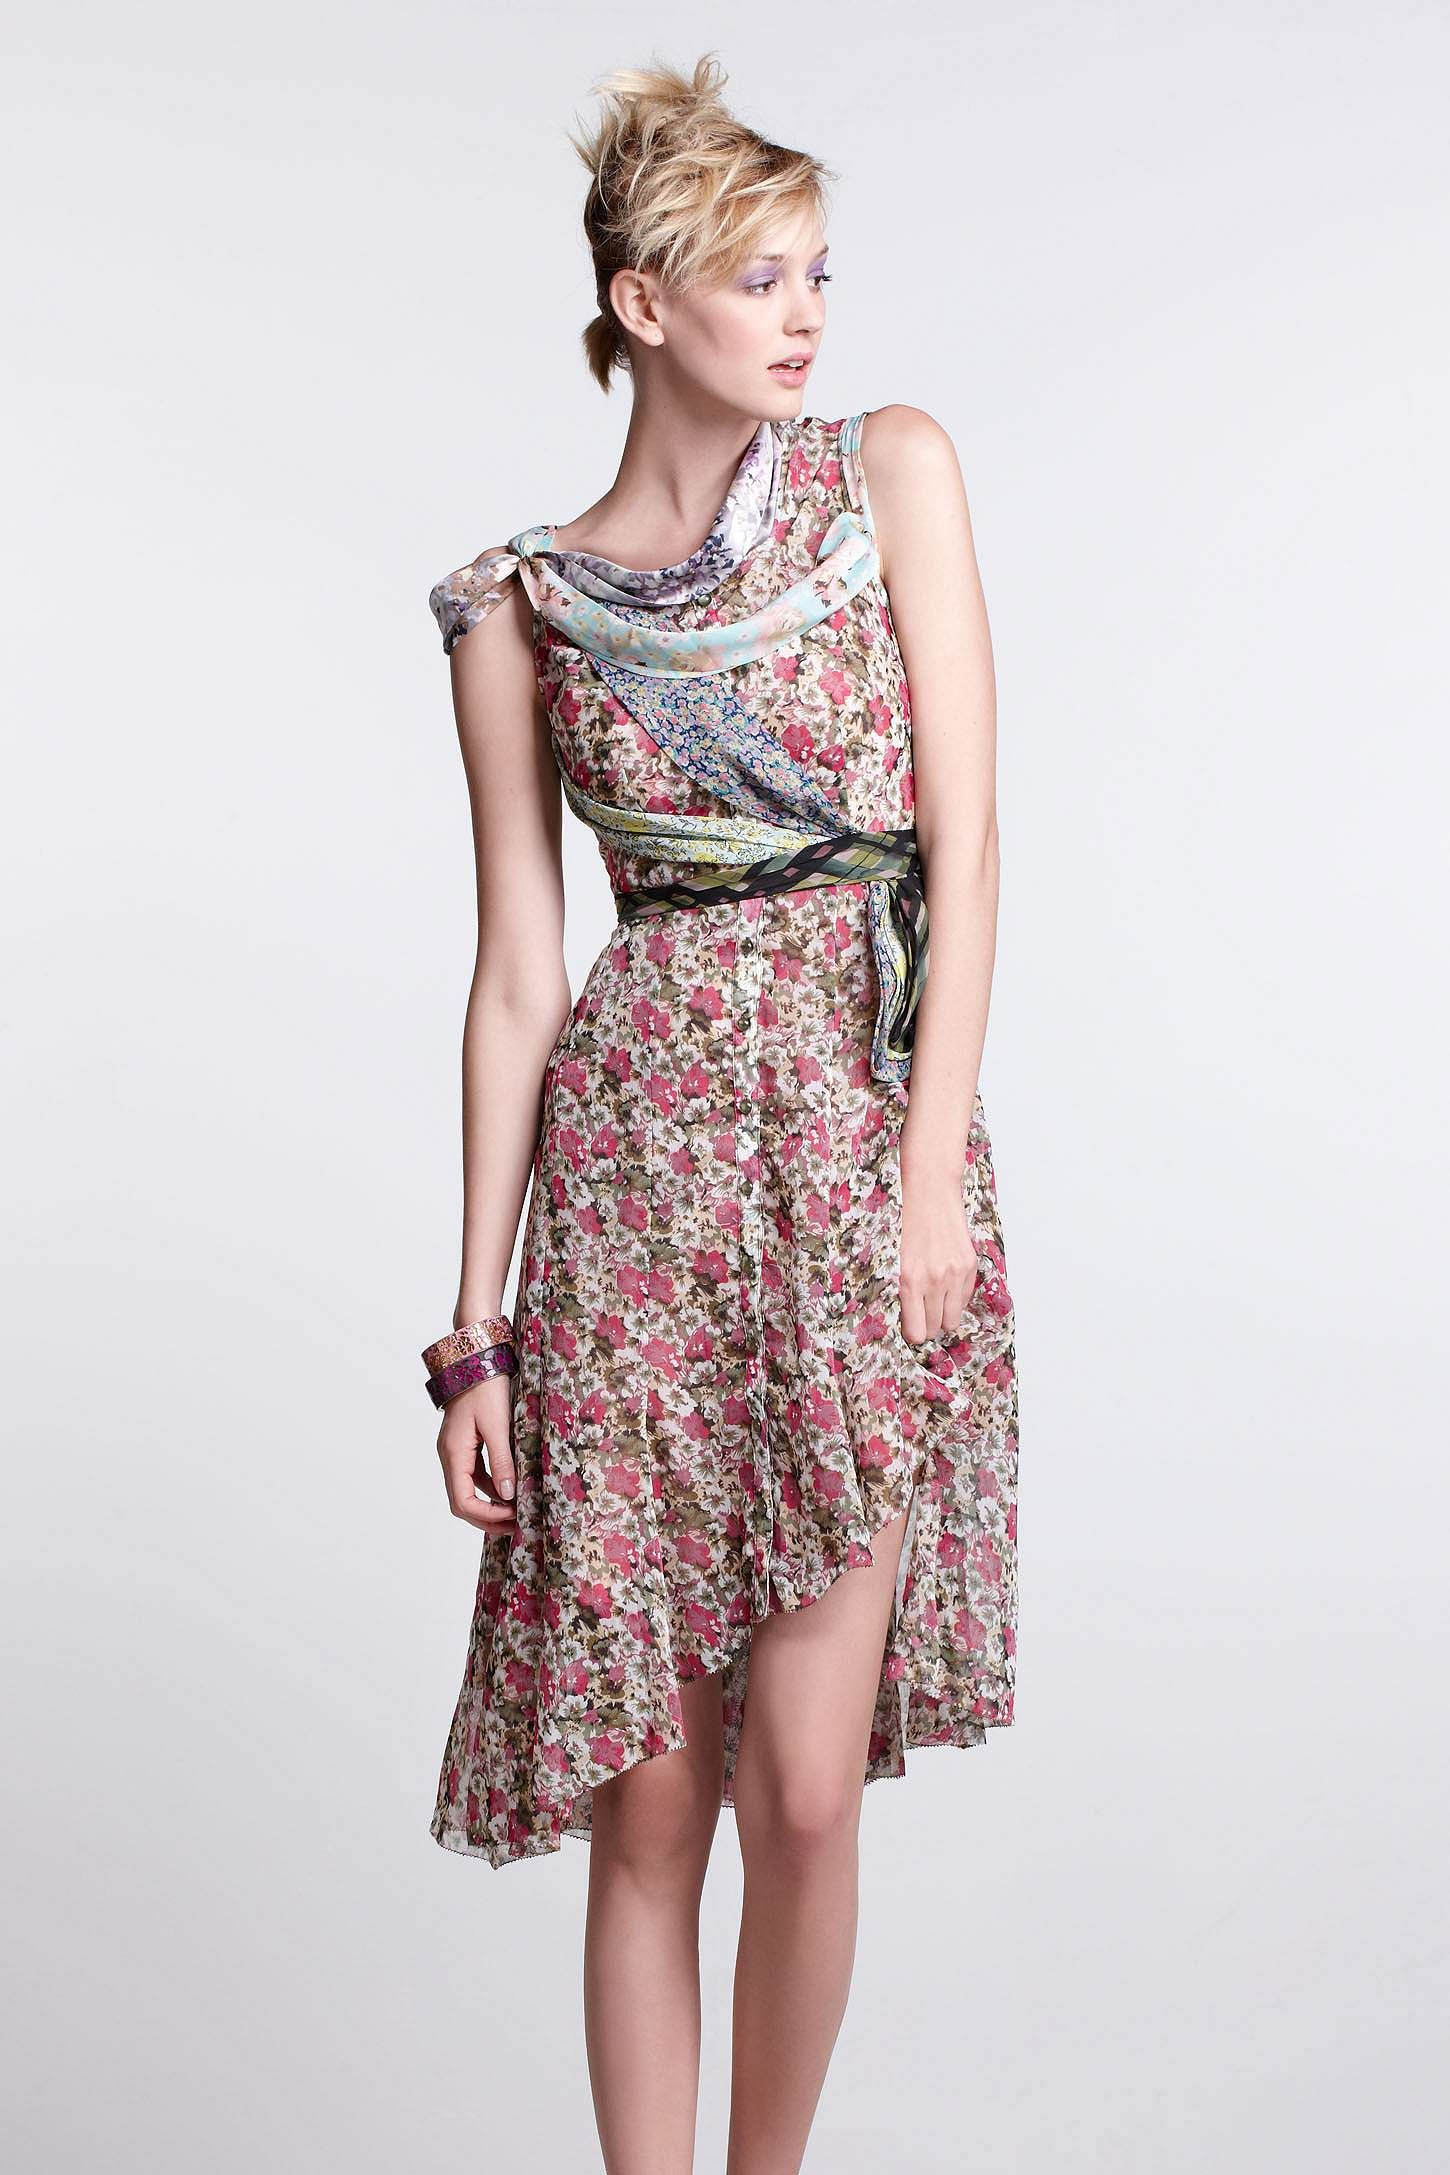 Wilderflora flounce dress anthropologie stylishness